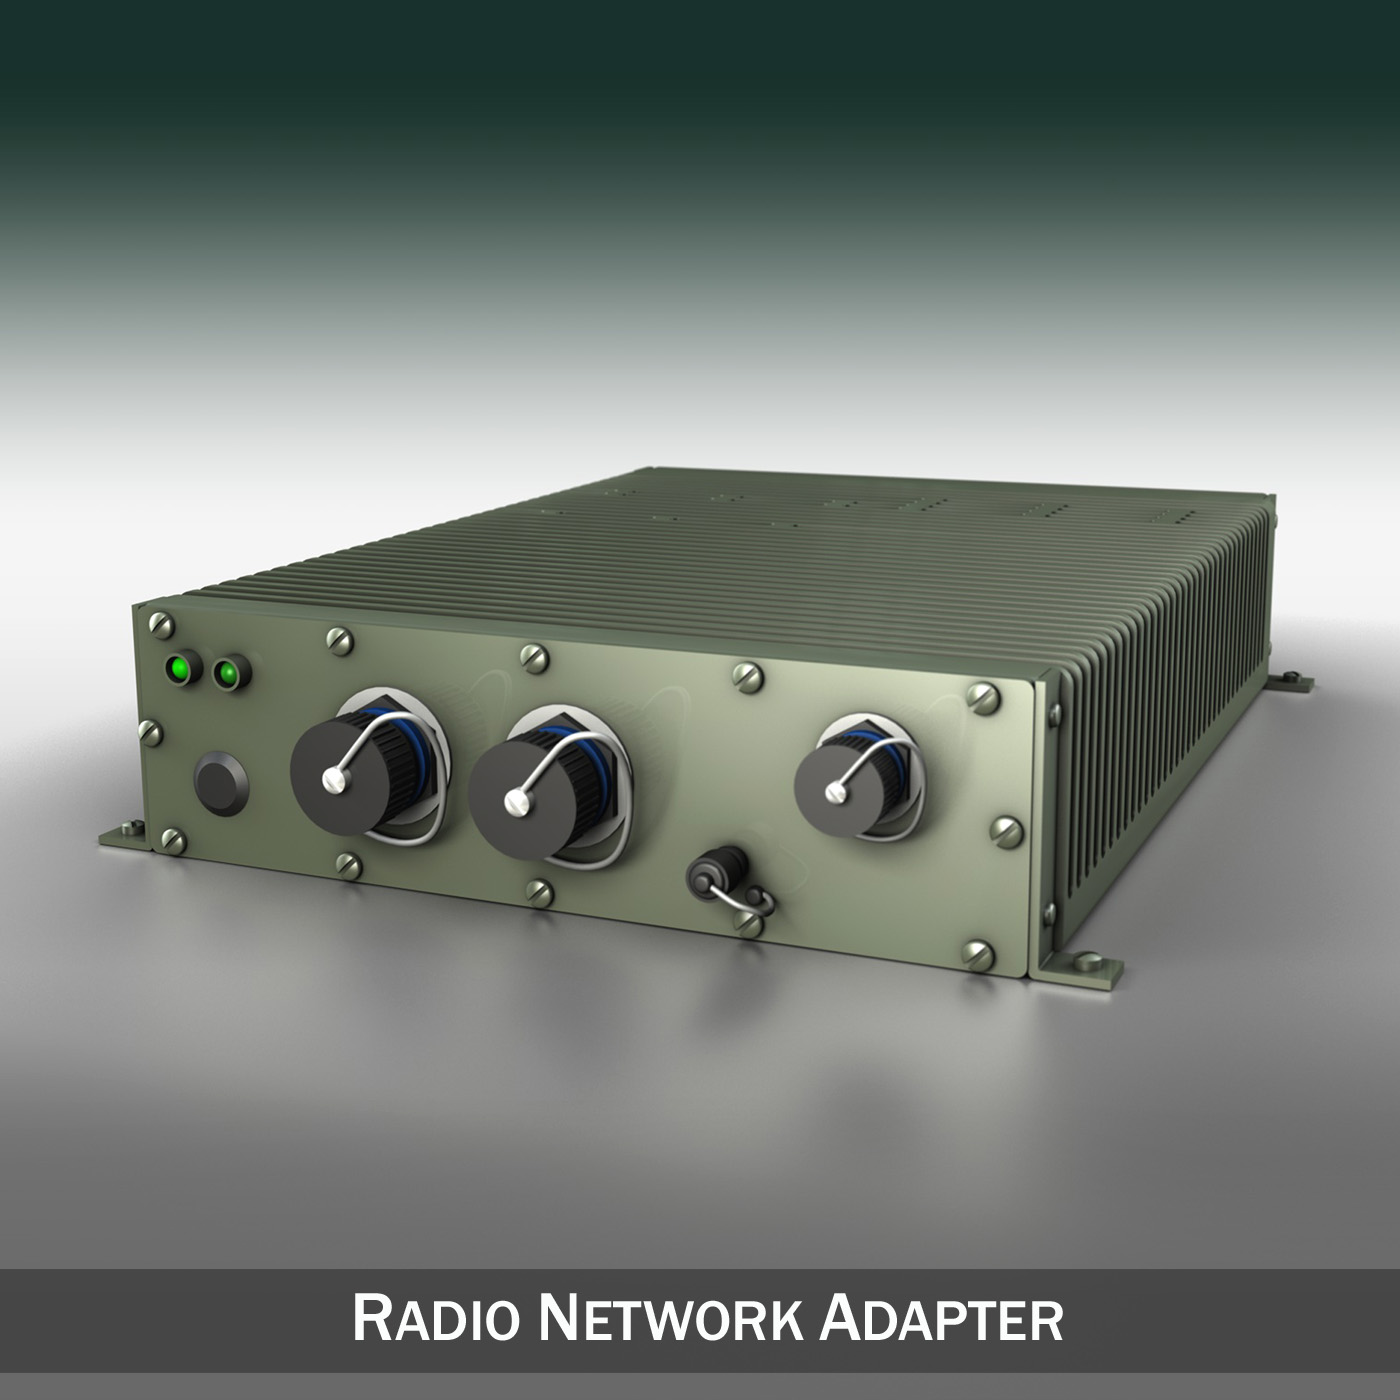 radio network adapter 3d model 3ds fbx c4d lwo obj 189305